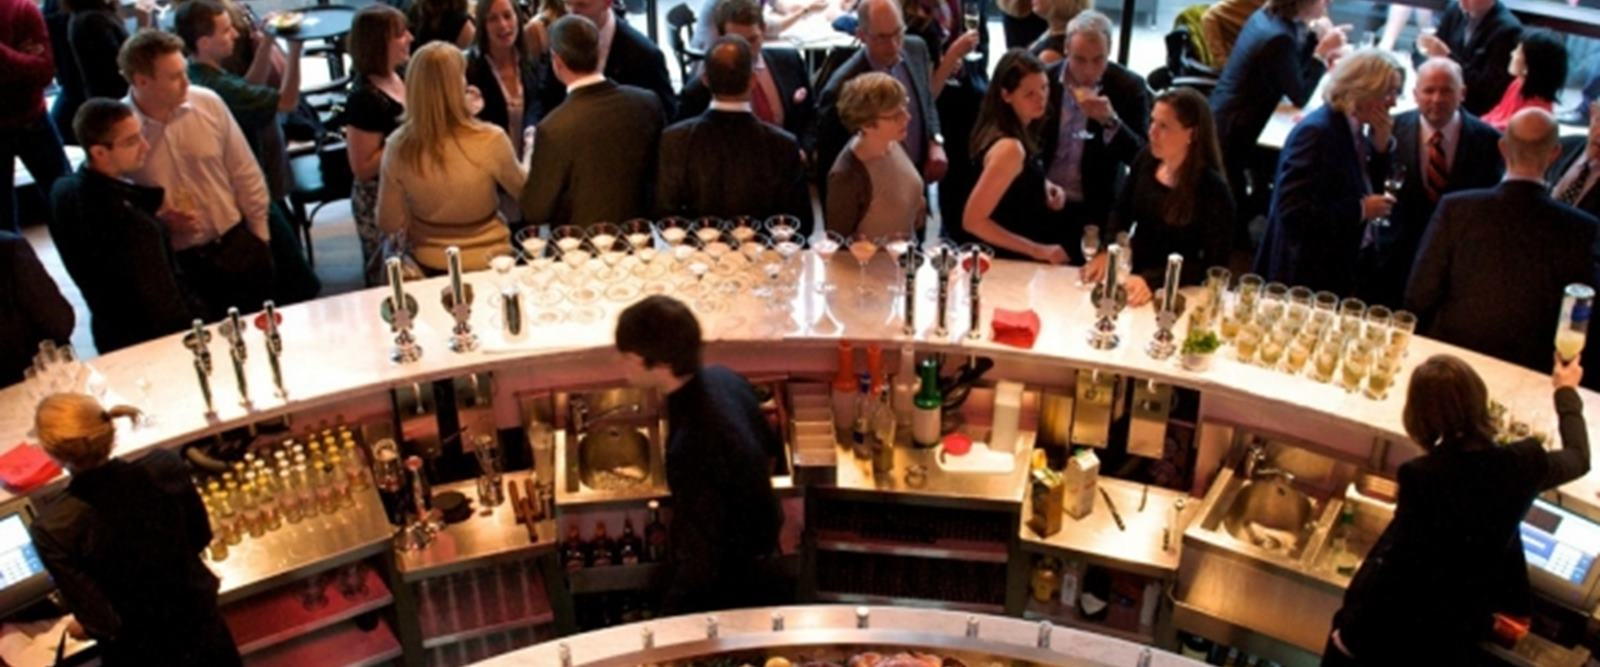 Boisdale of Canary Wharf_Oyster Bar (3)